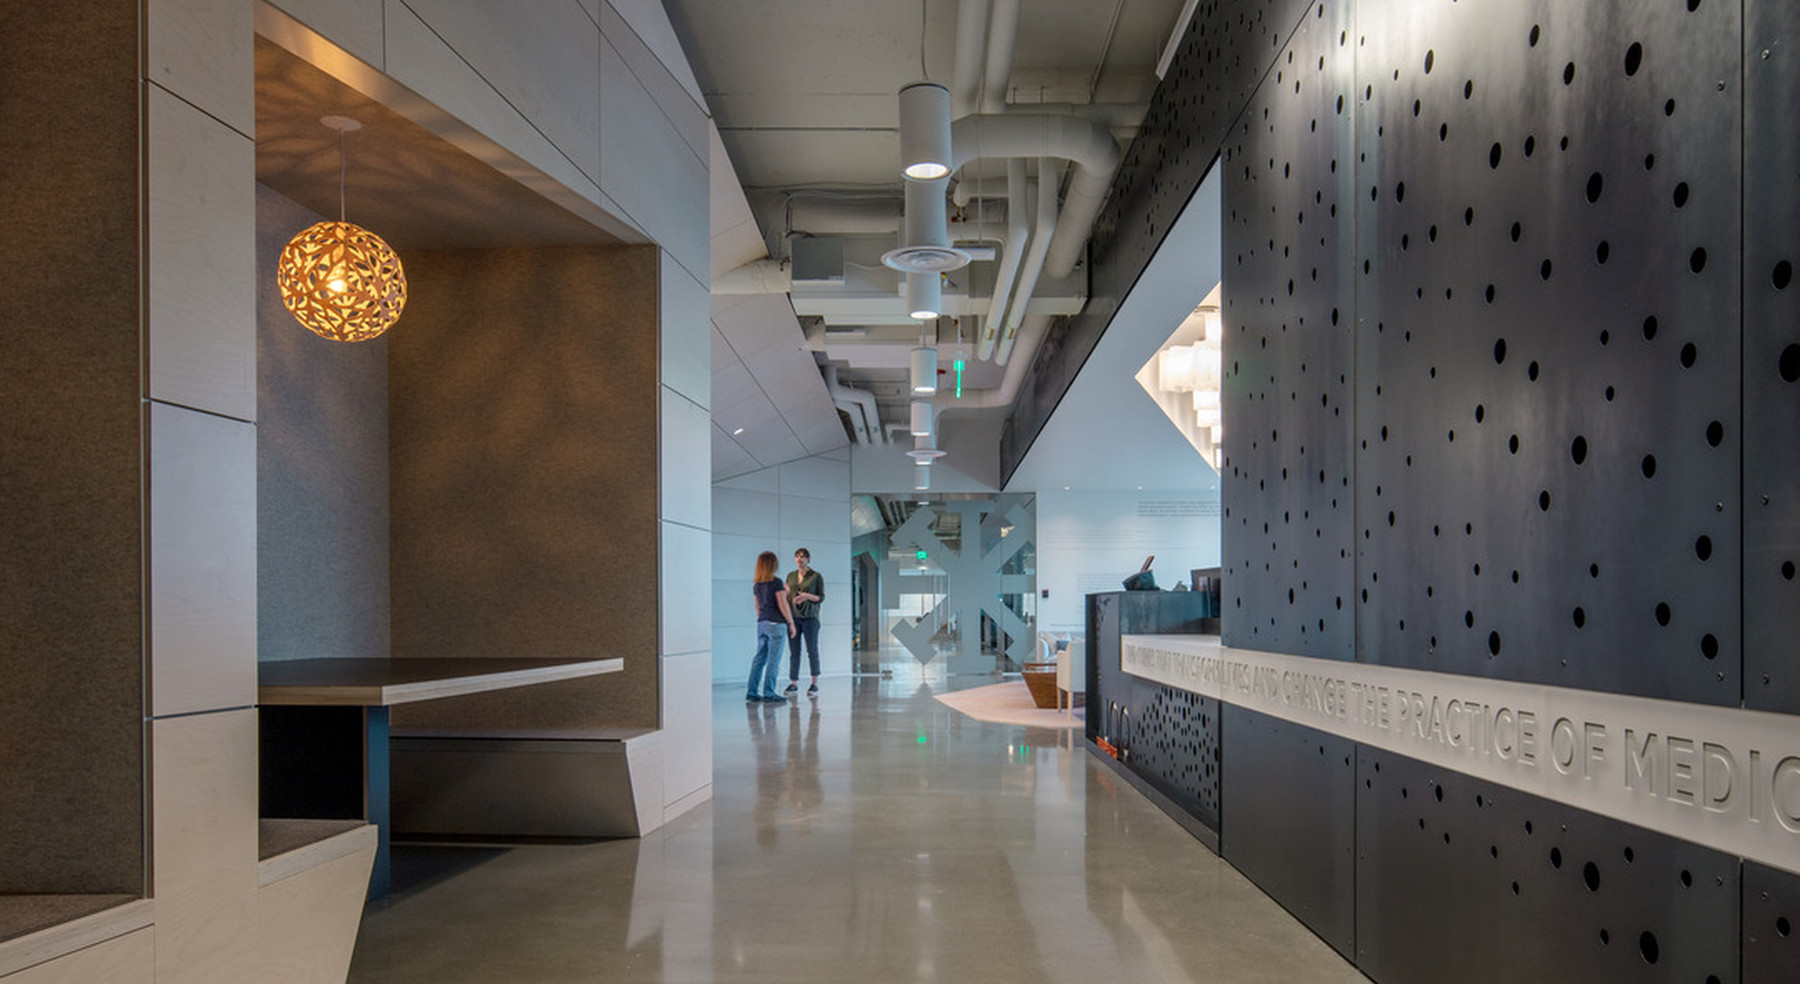 Celgene Seattle - Scientific Workplace and Research Center